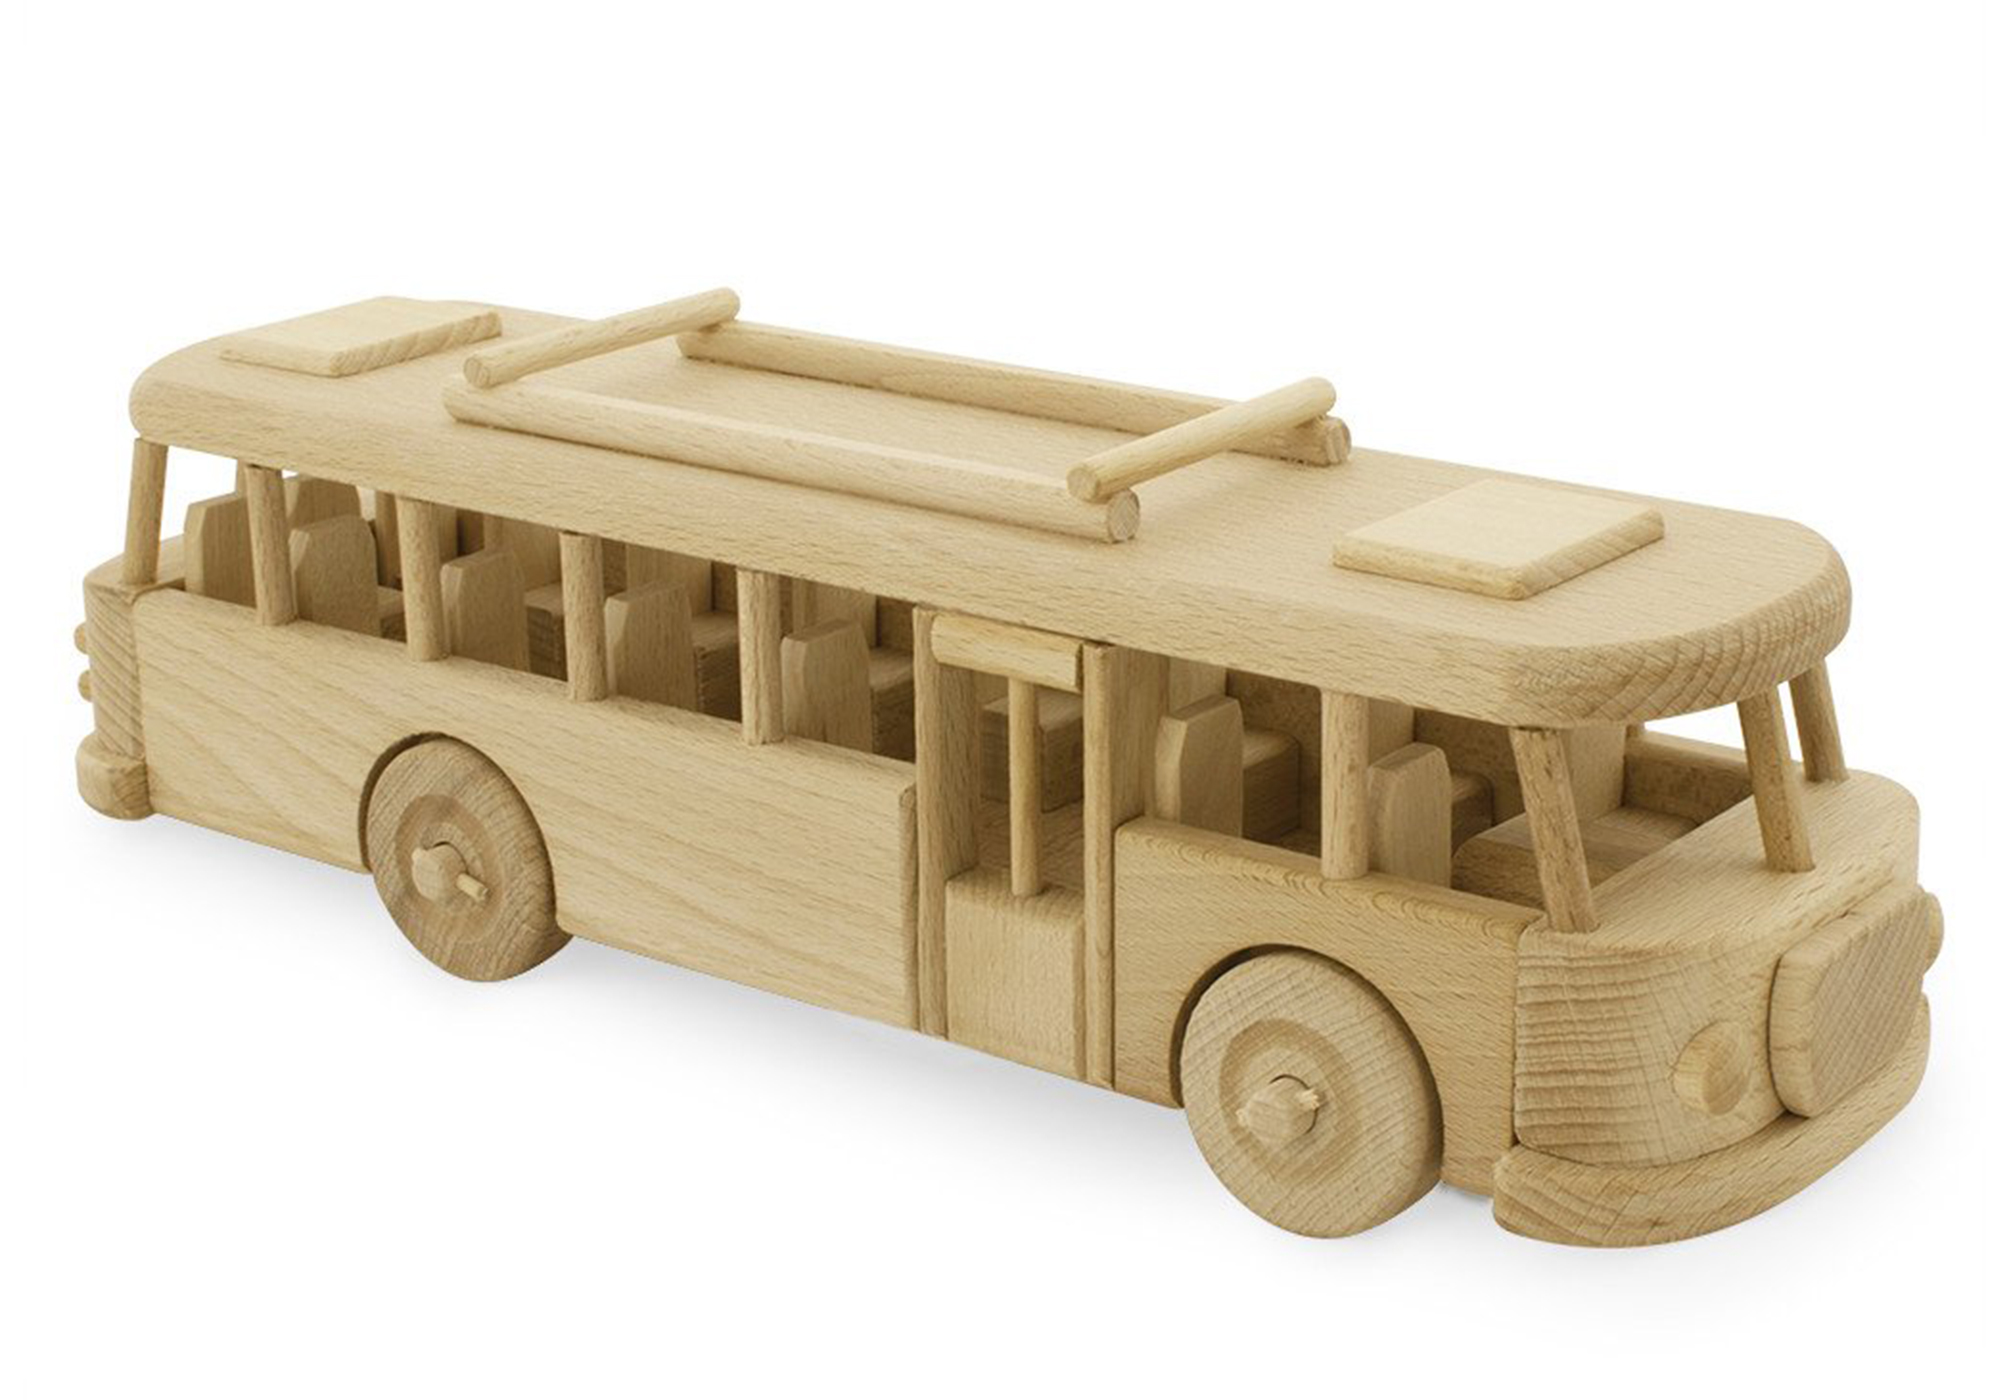 Wooden Retro Bus - Martin